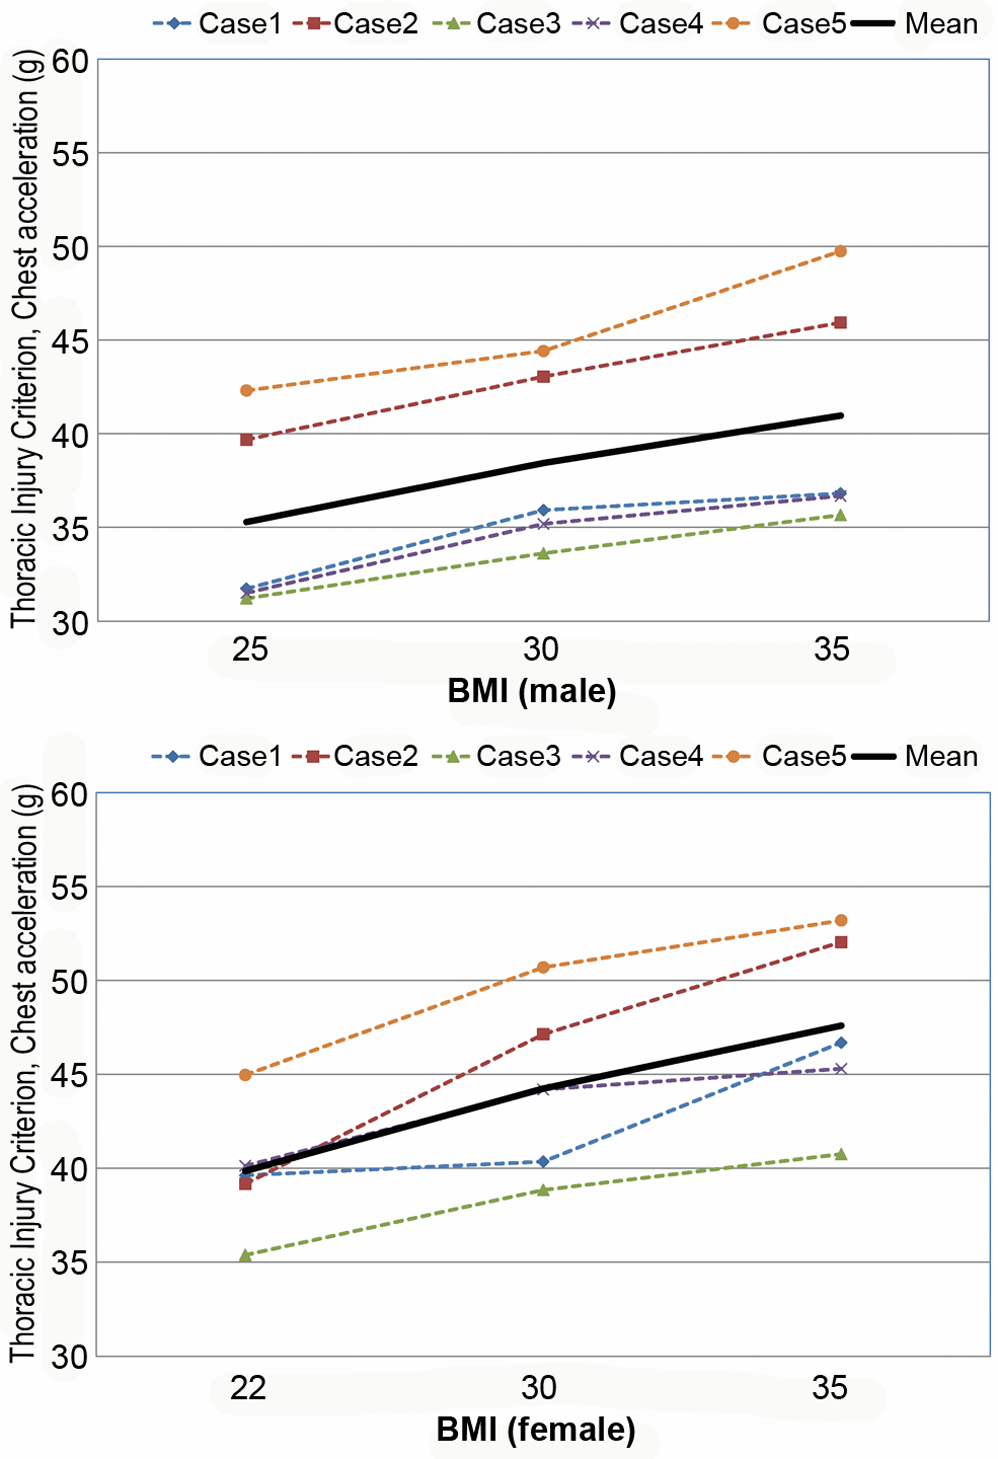 Computational investigation of the effect of obesity on the thorax injury criterion (chest acceleration, g) for male (top) and female (bottom).